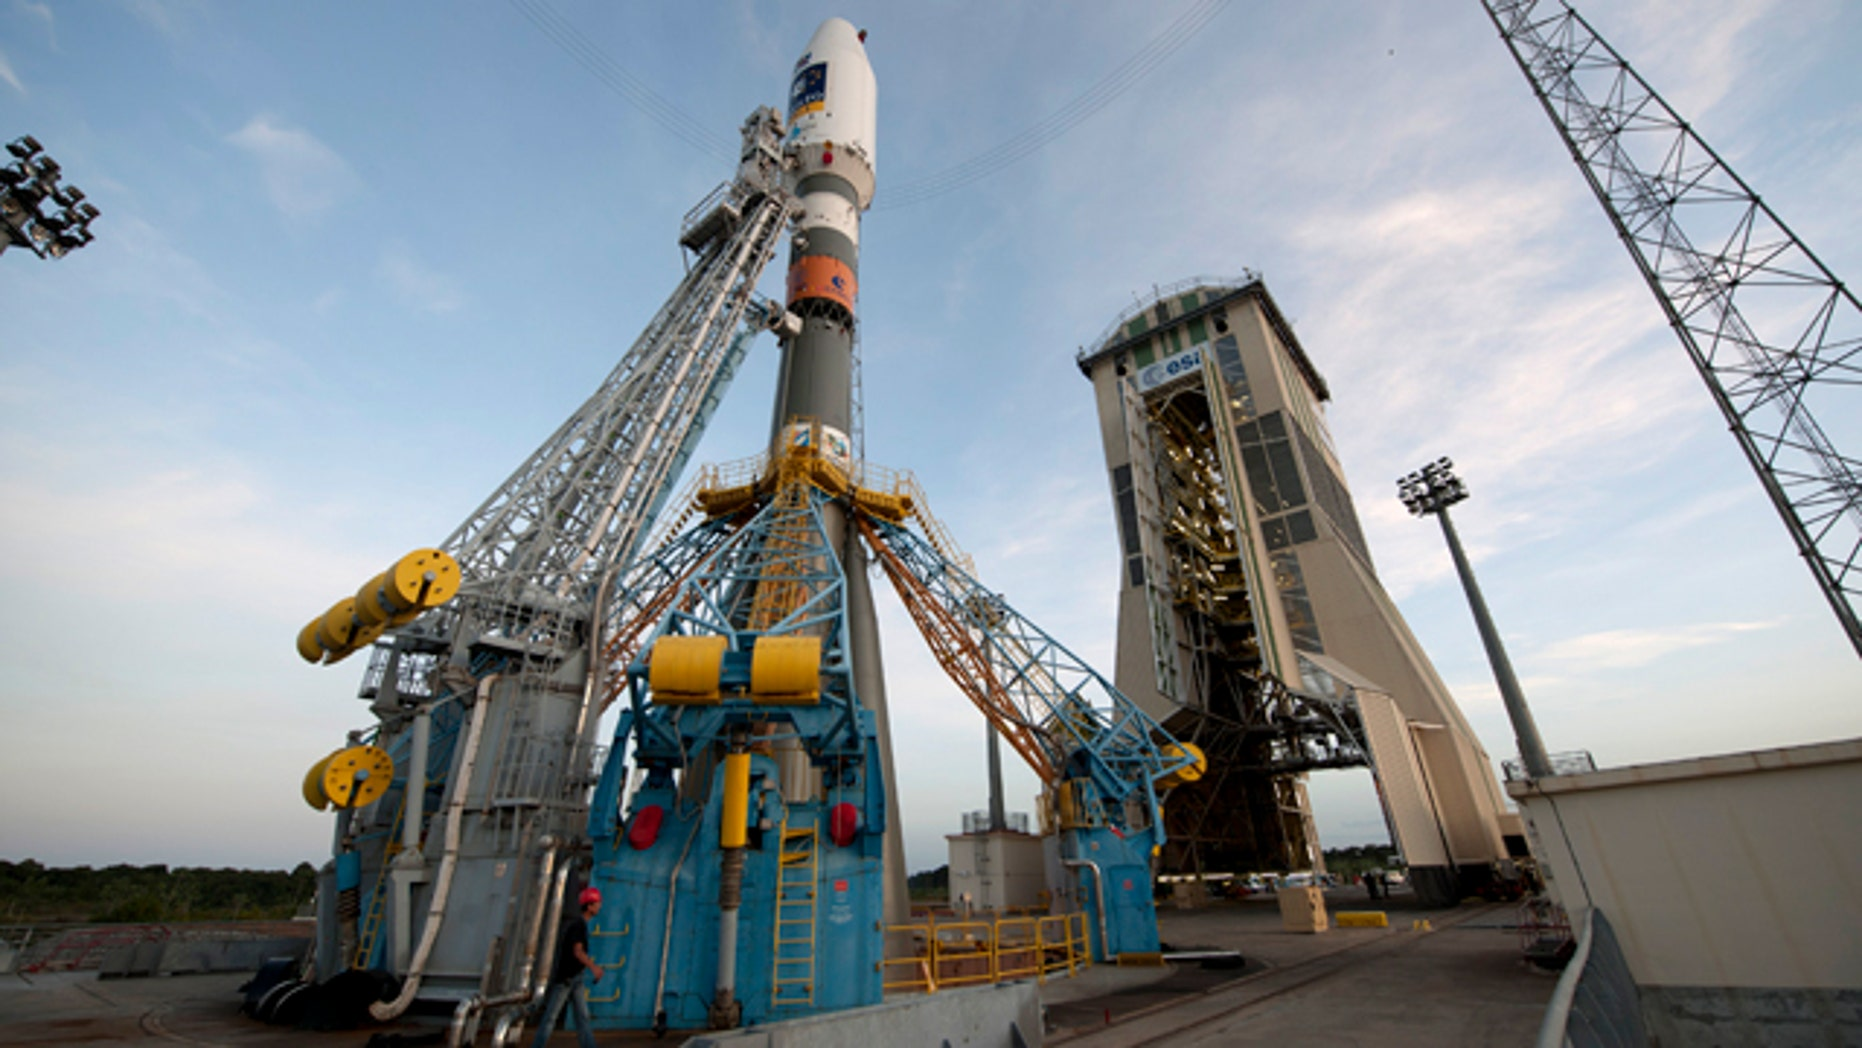 Oct. 14, 2011: Soyuz VS01, the first Soyuz flight from Europes Spaceport in French Guiana, sits on the launchpad awaiting the green light to lift off.The vehicle was rolled out horizontally on its erector from the preparation building to the launch zone and then raised into the vertical position. The Upper Composite, comprising the Fregat upper stage, payload and fairing, was also transferred and added onto the vehicle from above, completing the very first Soyuz on its launch pad at Europes Spaceport.Soyuz VS01 will lift off on 20 October 2011. The rocket will carry the first two satellites of Europes Galileo navigation system into orbit.